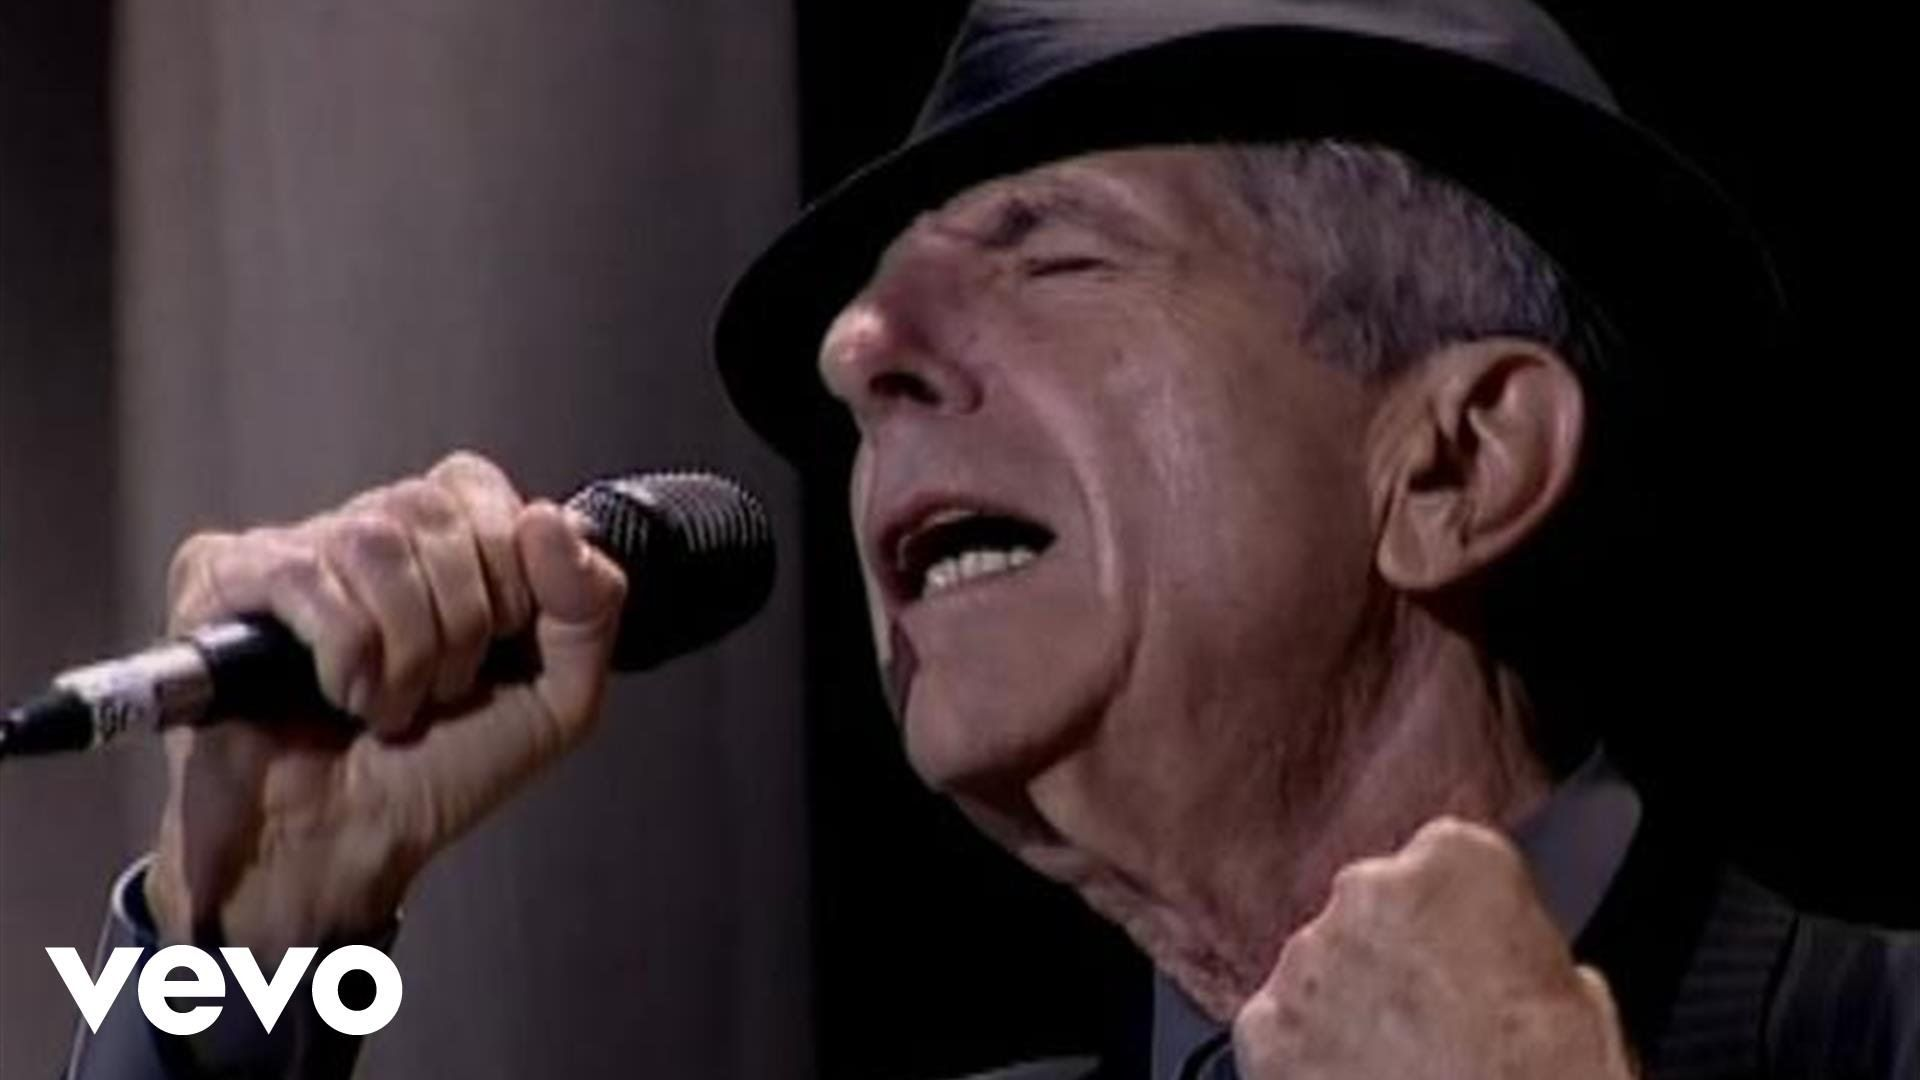 Music Video By Leonard Cohen Performing Hallelujah C 2009 Sony Music Entertainment Leonard Cohen Leonard Cohen Hallelujah Leonard Cohen Leonard Cohen Lyrics